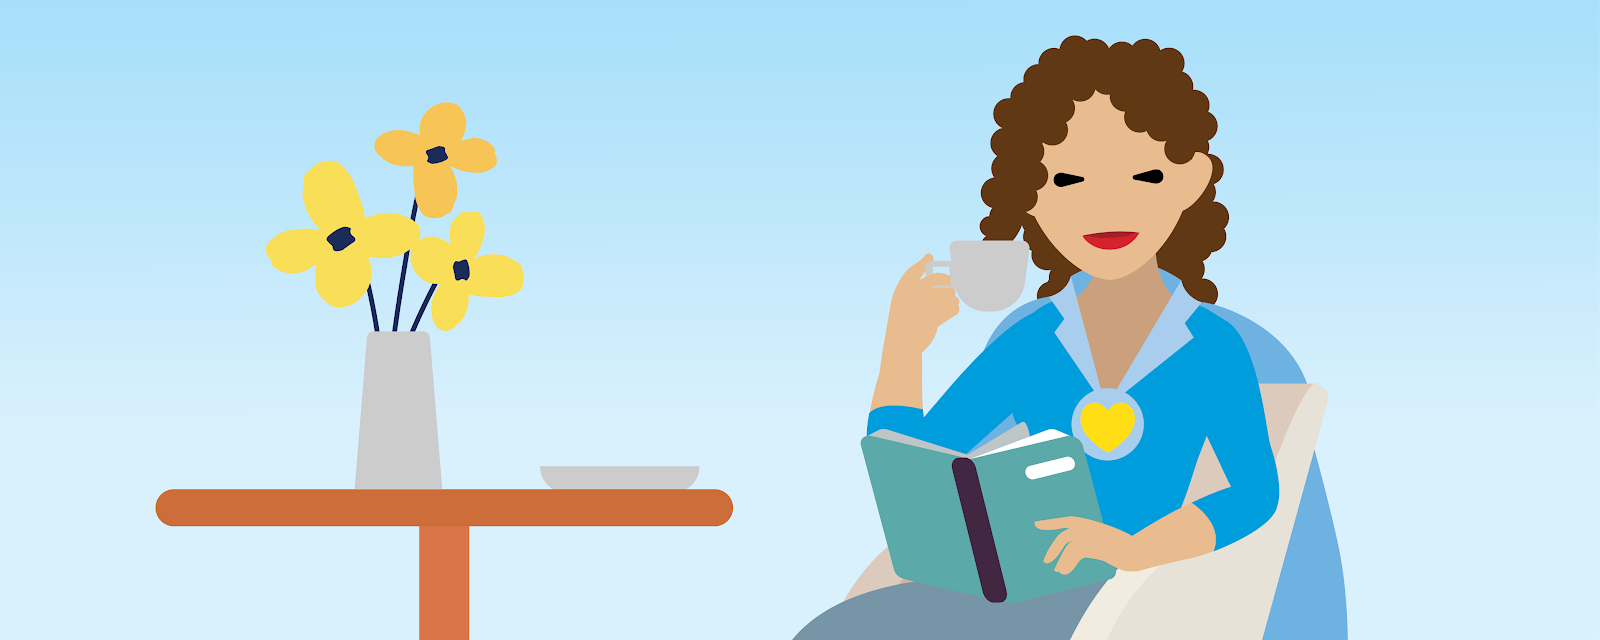 Illustration of a woman sitting in a chair, drinking coffee and reading a book.